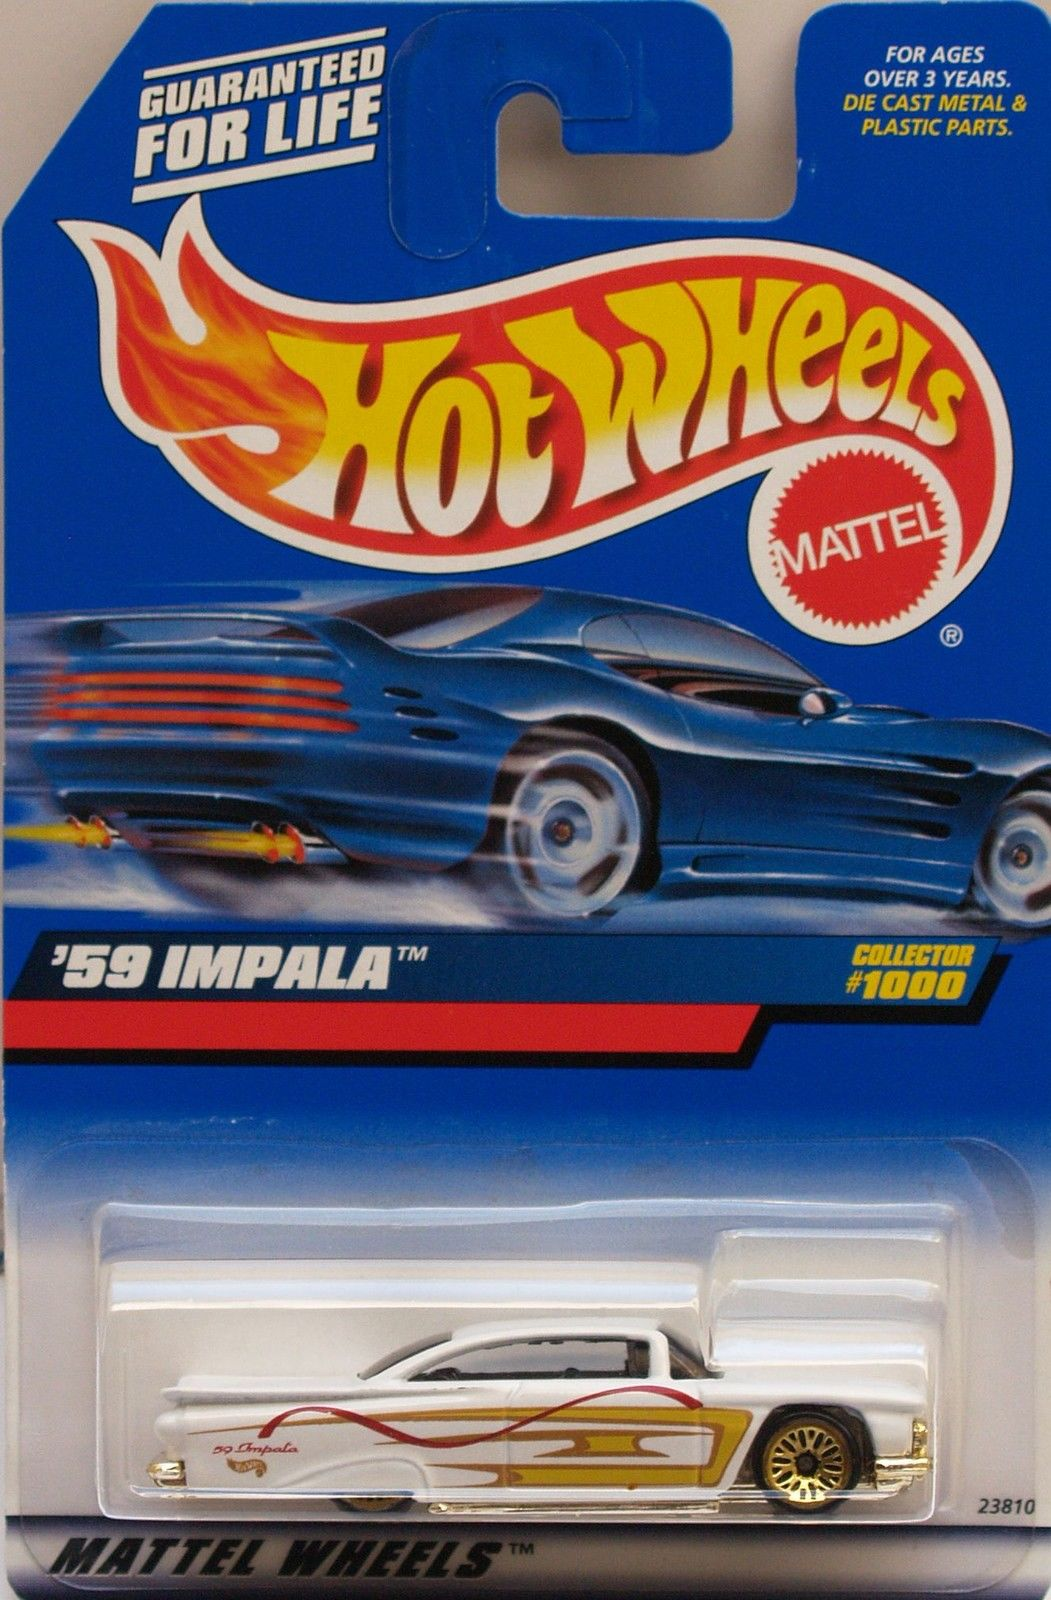 HOT WHEELS 1999 '59 CHEVY IMPALA COLLECT.#1000 WHITE